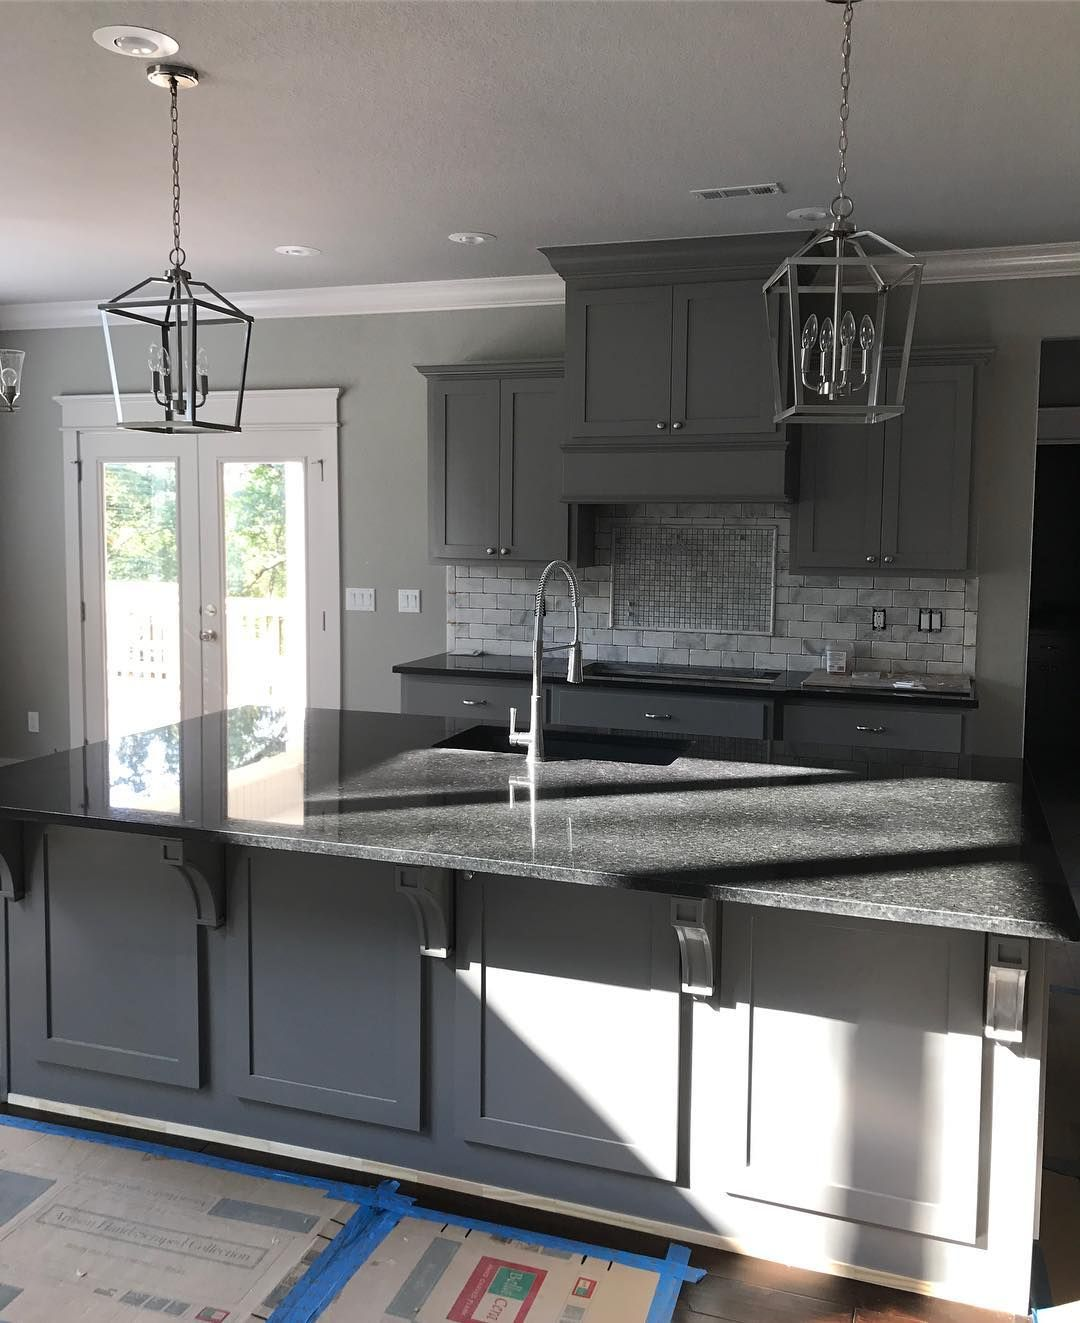 Sherwin Williams Dovetail Kitchen Cabinets With Black Pearl Granite Countertops P Black Granite Countertops White Granite Countertops Backsplash Black Granite